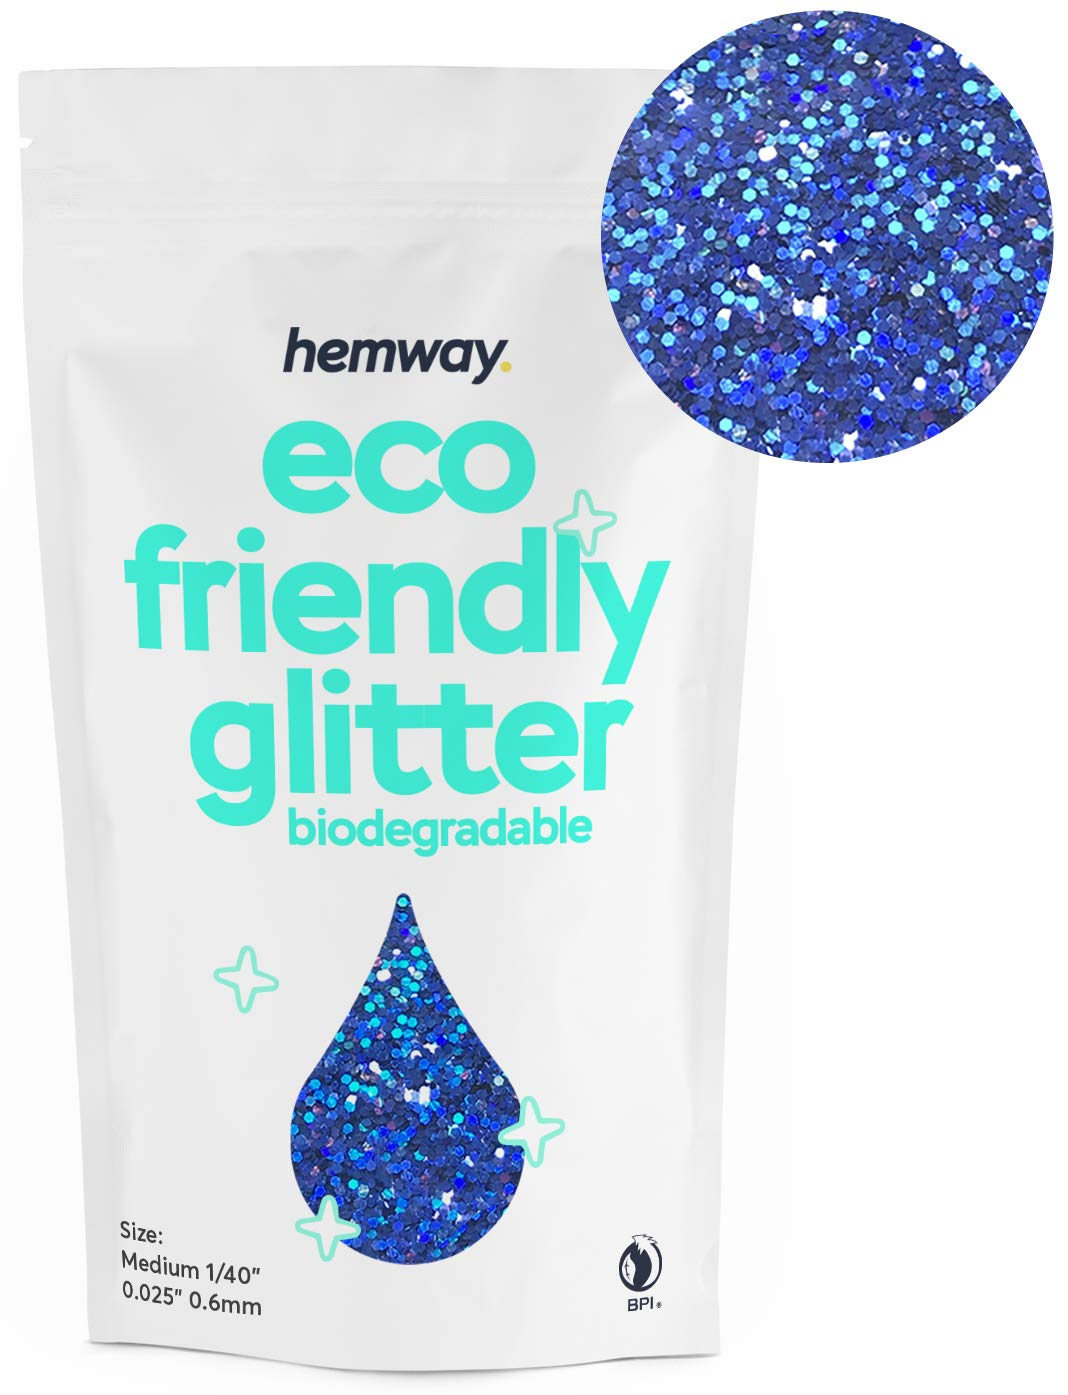 """Hemway Eco Friendly Biodegradable Glitter 100g / 3.5oz Bio Cosmetic Safe Sparkle Vegan For Face, Eyeshadow, Body, Hair, Nail And Festival Makeup, Craft - 1/40"""" 0.025"""" 0.6mm - Sapphire Blue Holographic"""